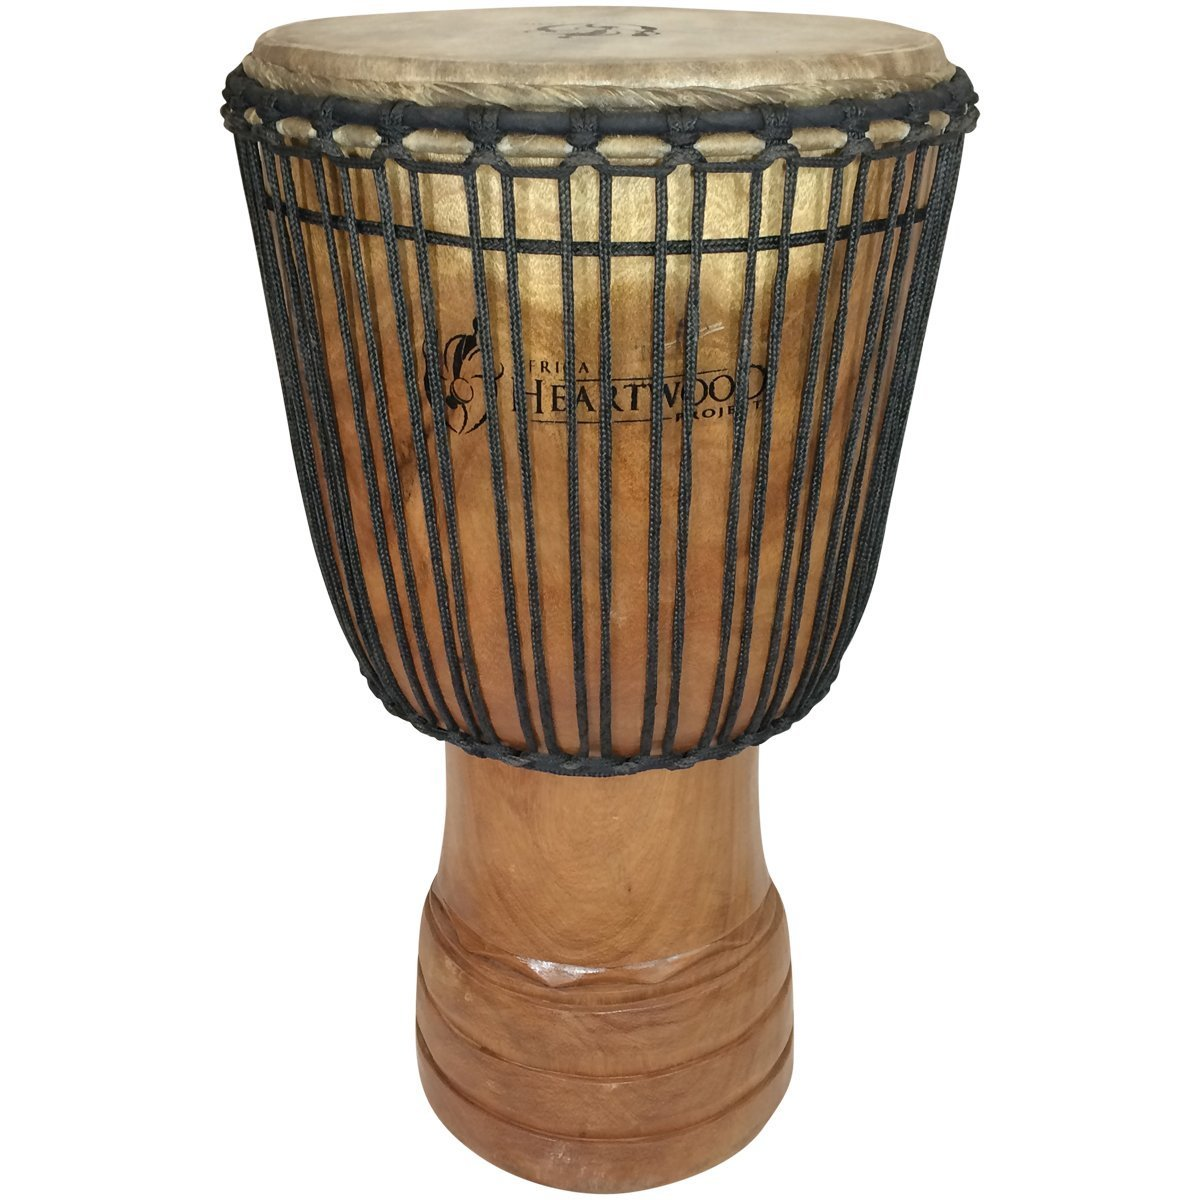 Hand-carved Djembe Drum From Africa - 14''x25'' Oversize with Big Bass (Rings Carving) by Africa Heartwood Project